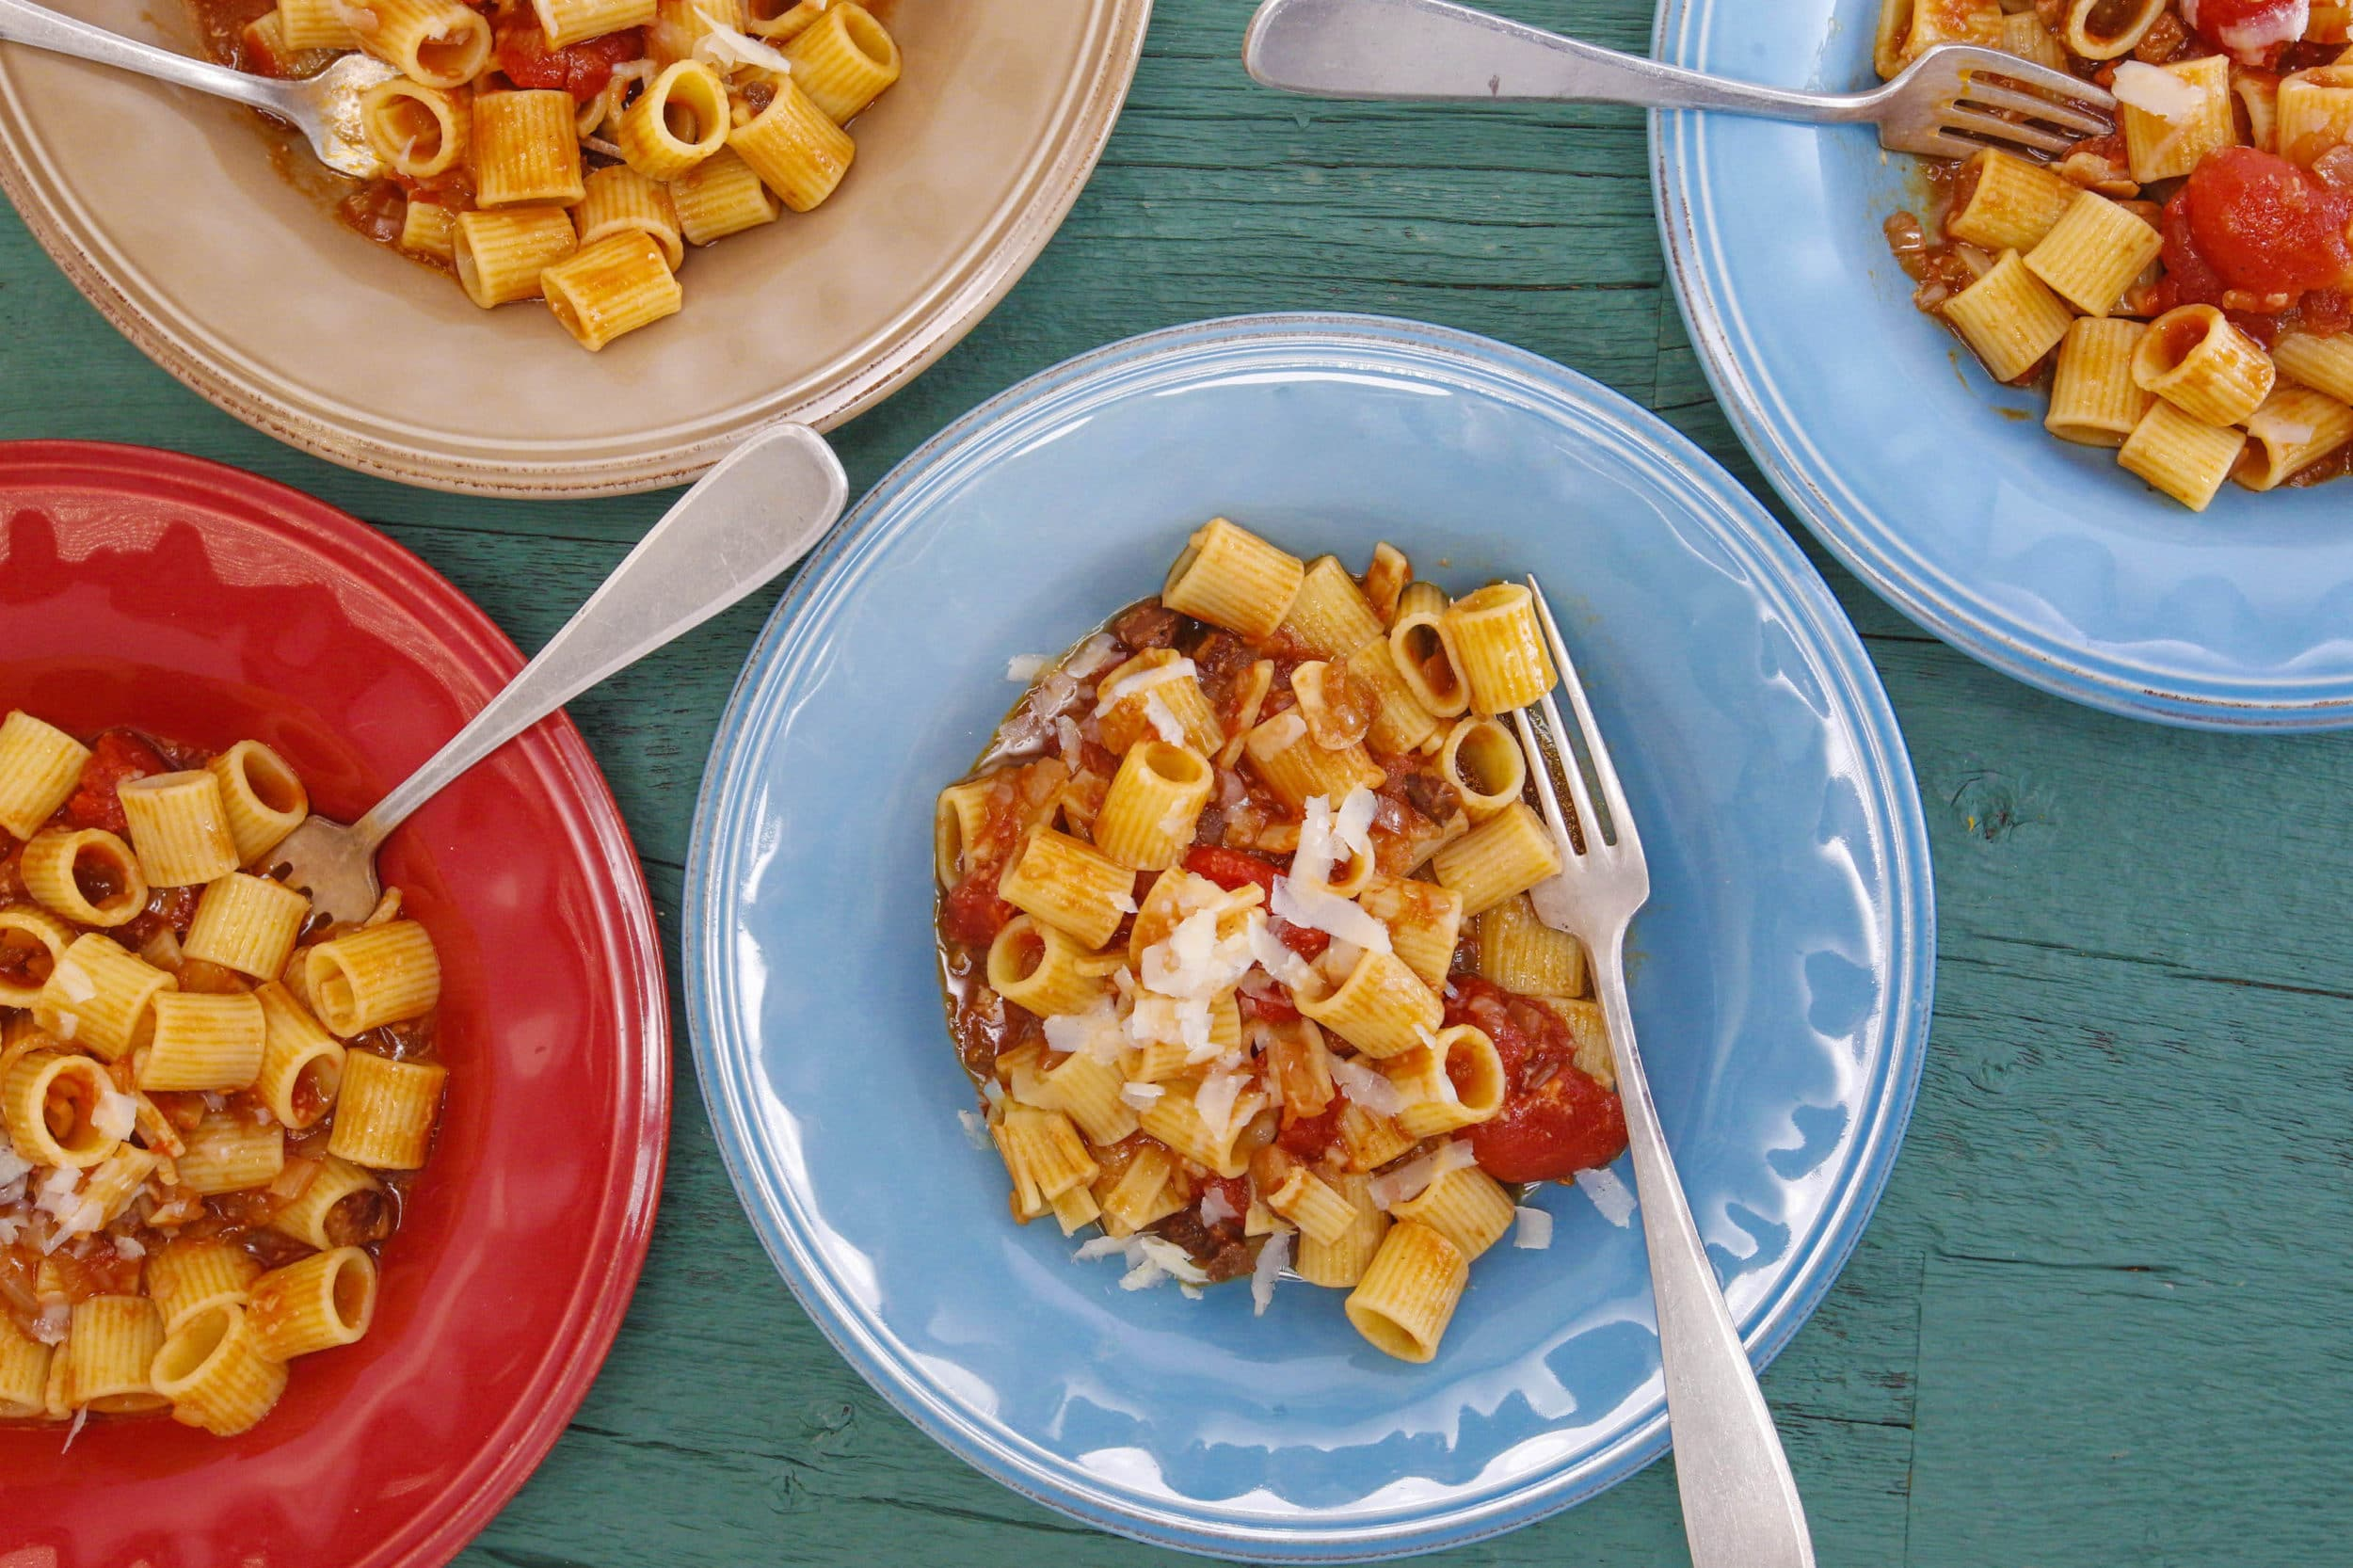 Rigatoni with Bacon, Onion and Balsamic Vinegar (Mezze Rigatoni all'Amatriciana a Modena)